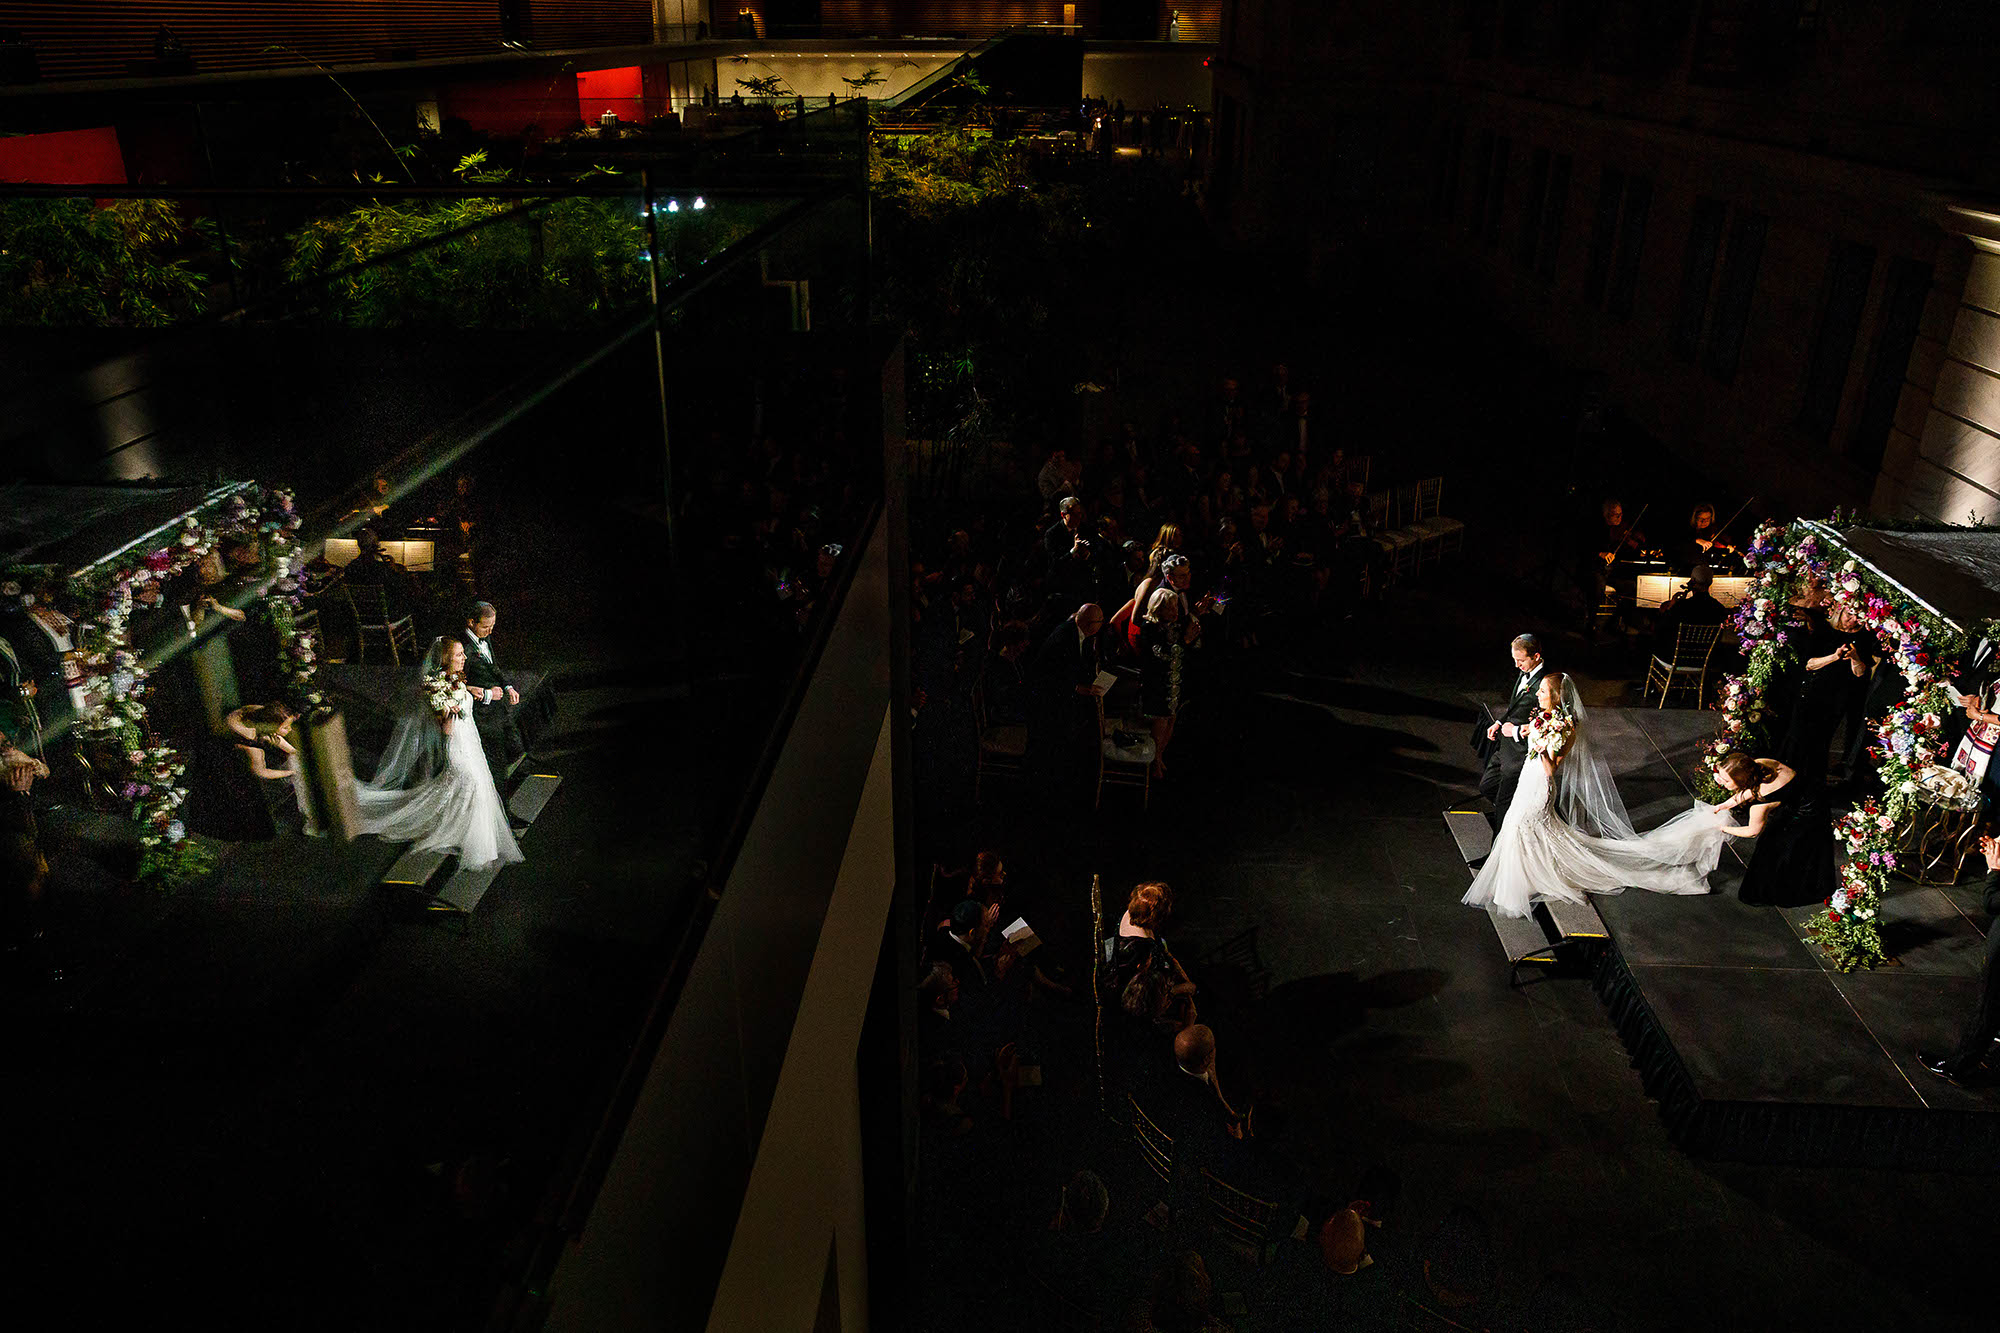 Newly married couple walking back down the aisle at the end of the wedding ceremony inside the Cleveland Museum of Art where their image is being reflected on the widows across from them in downtown Cleveland, Ohio.